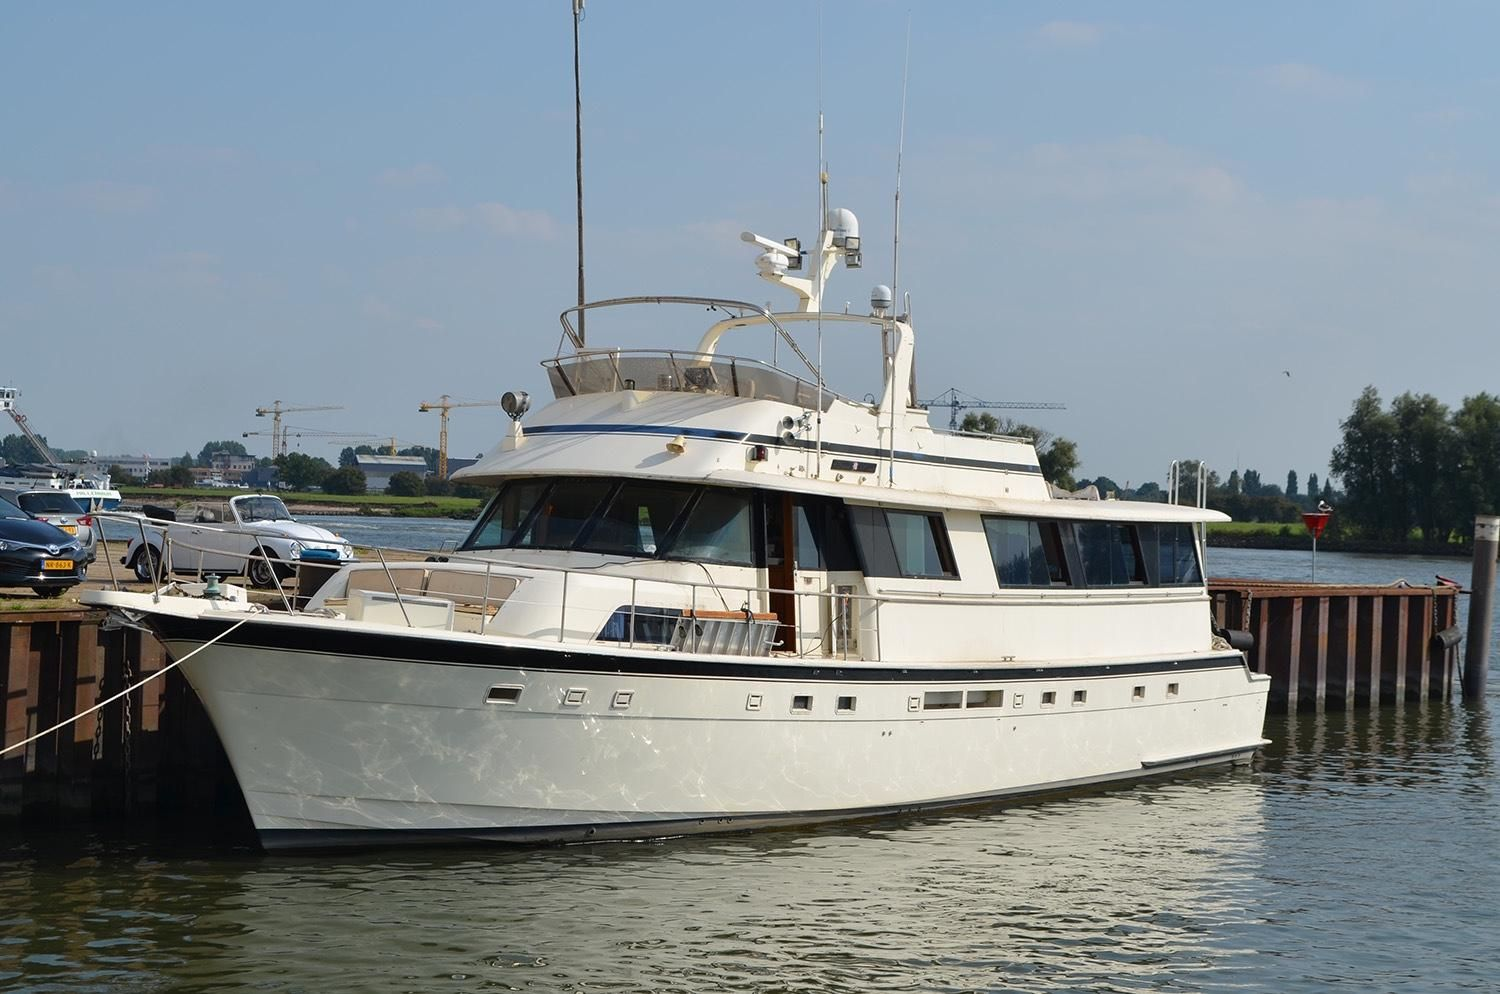 1985 hatteras 70 cockpit motor yacht power boat for sale for Hatteras 70 motor yacht